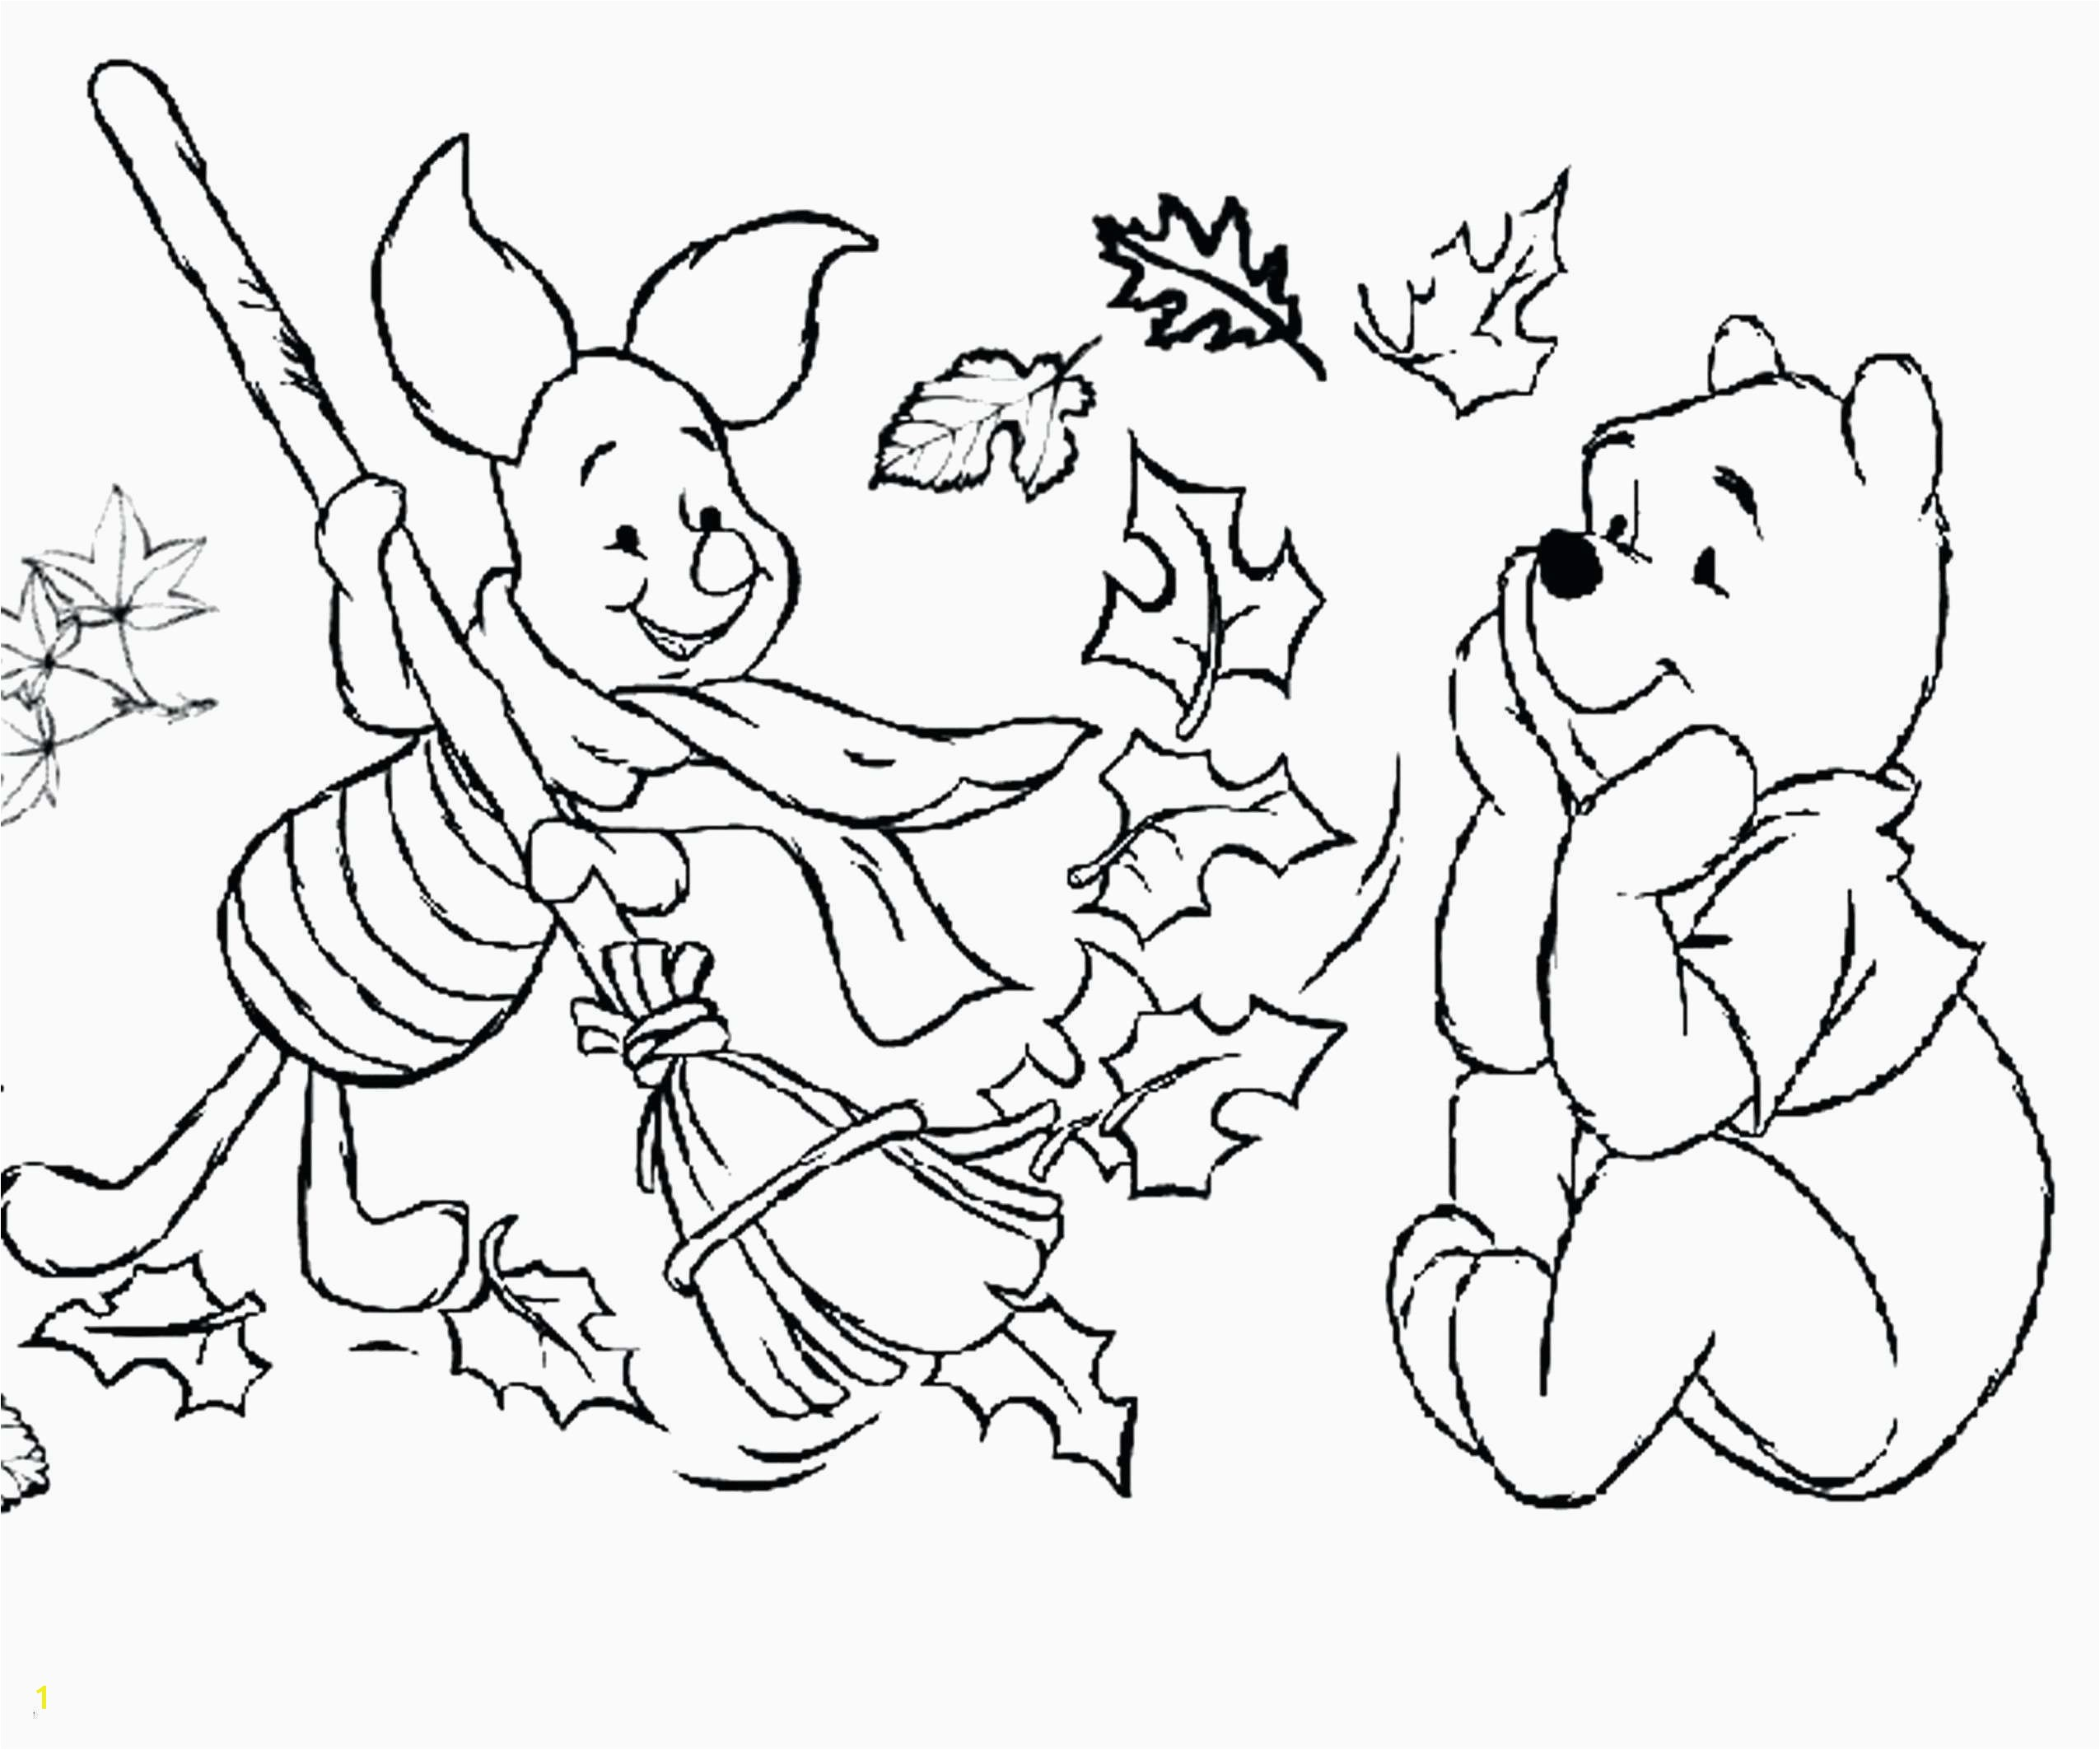 Disney Coloring Pages Princess Free Coloring Sheets Disney Princess Coloring Pages for Kids Free Coloring Sheets